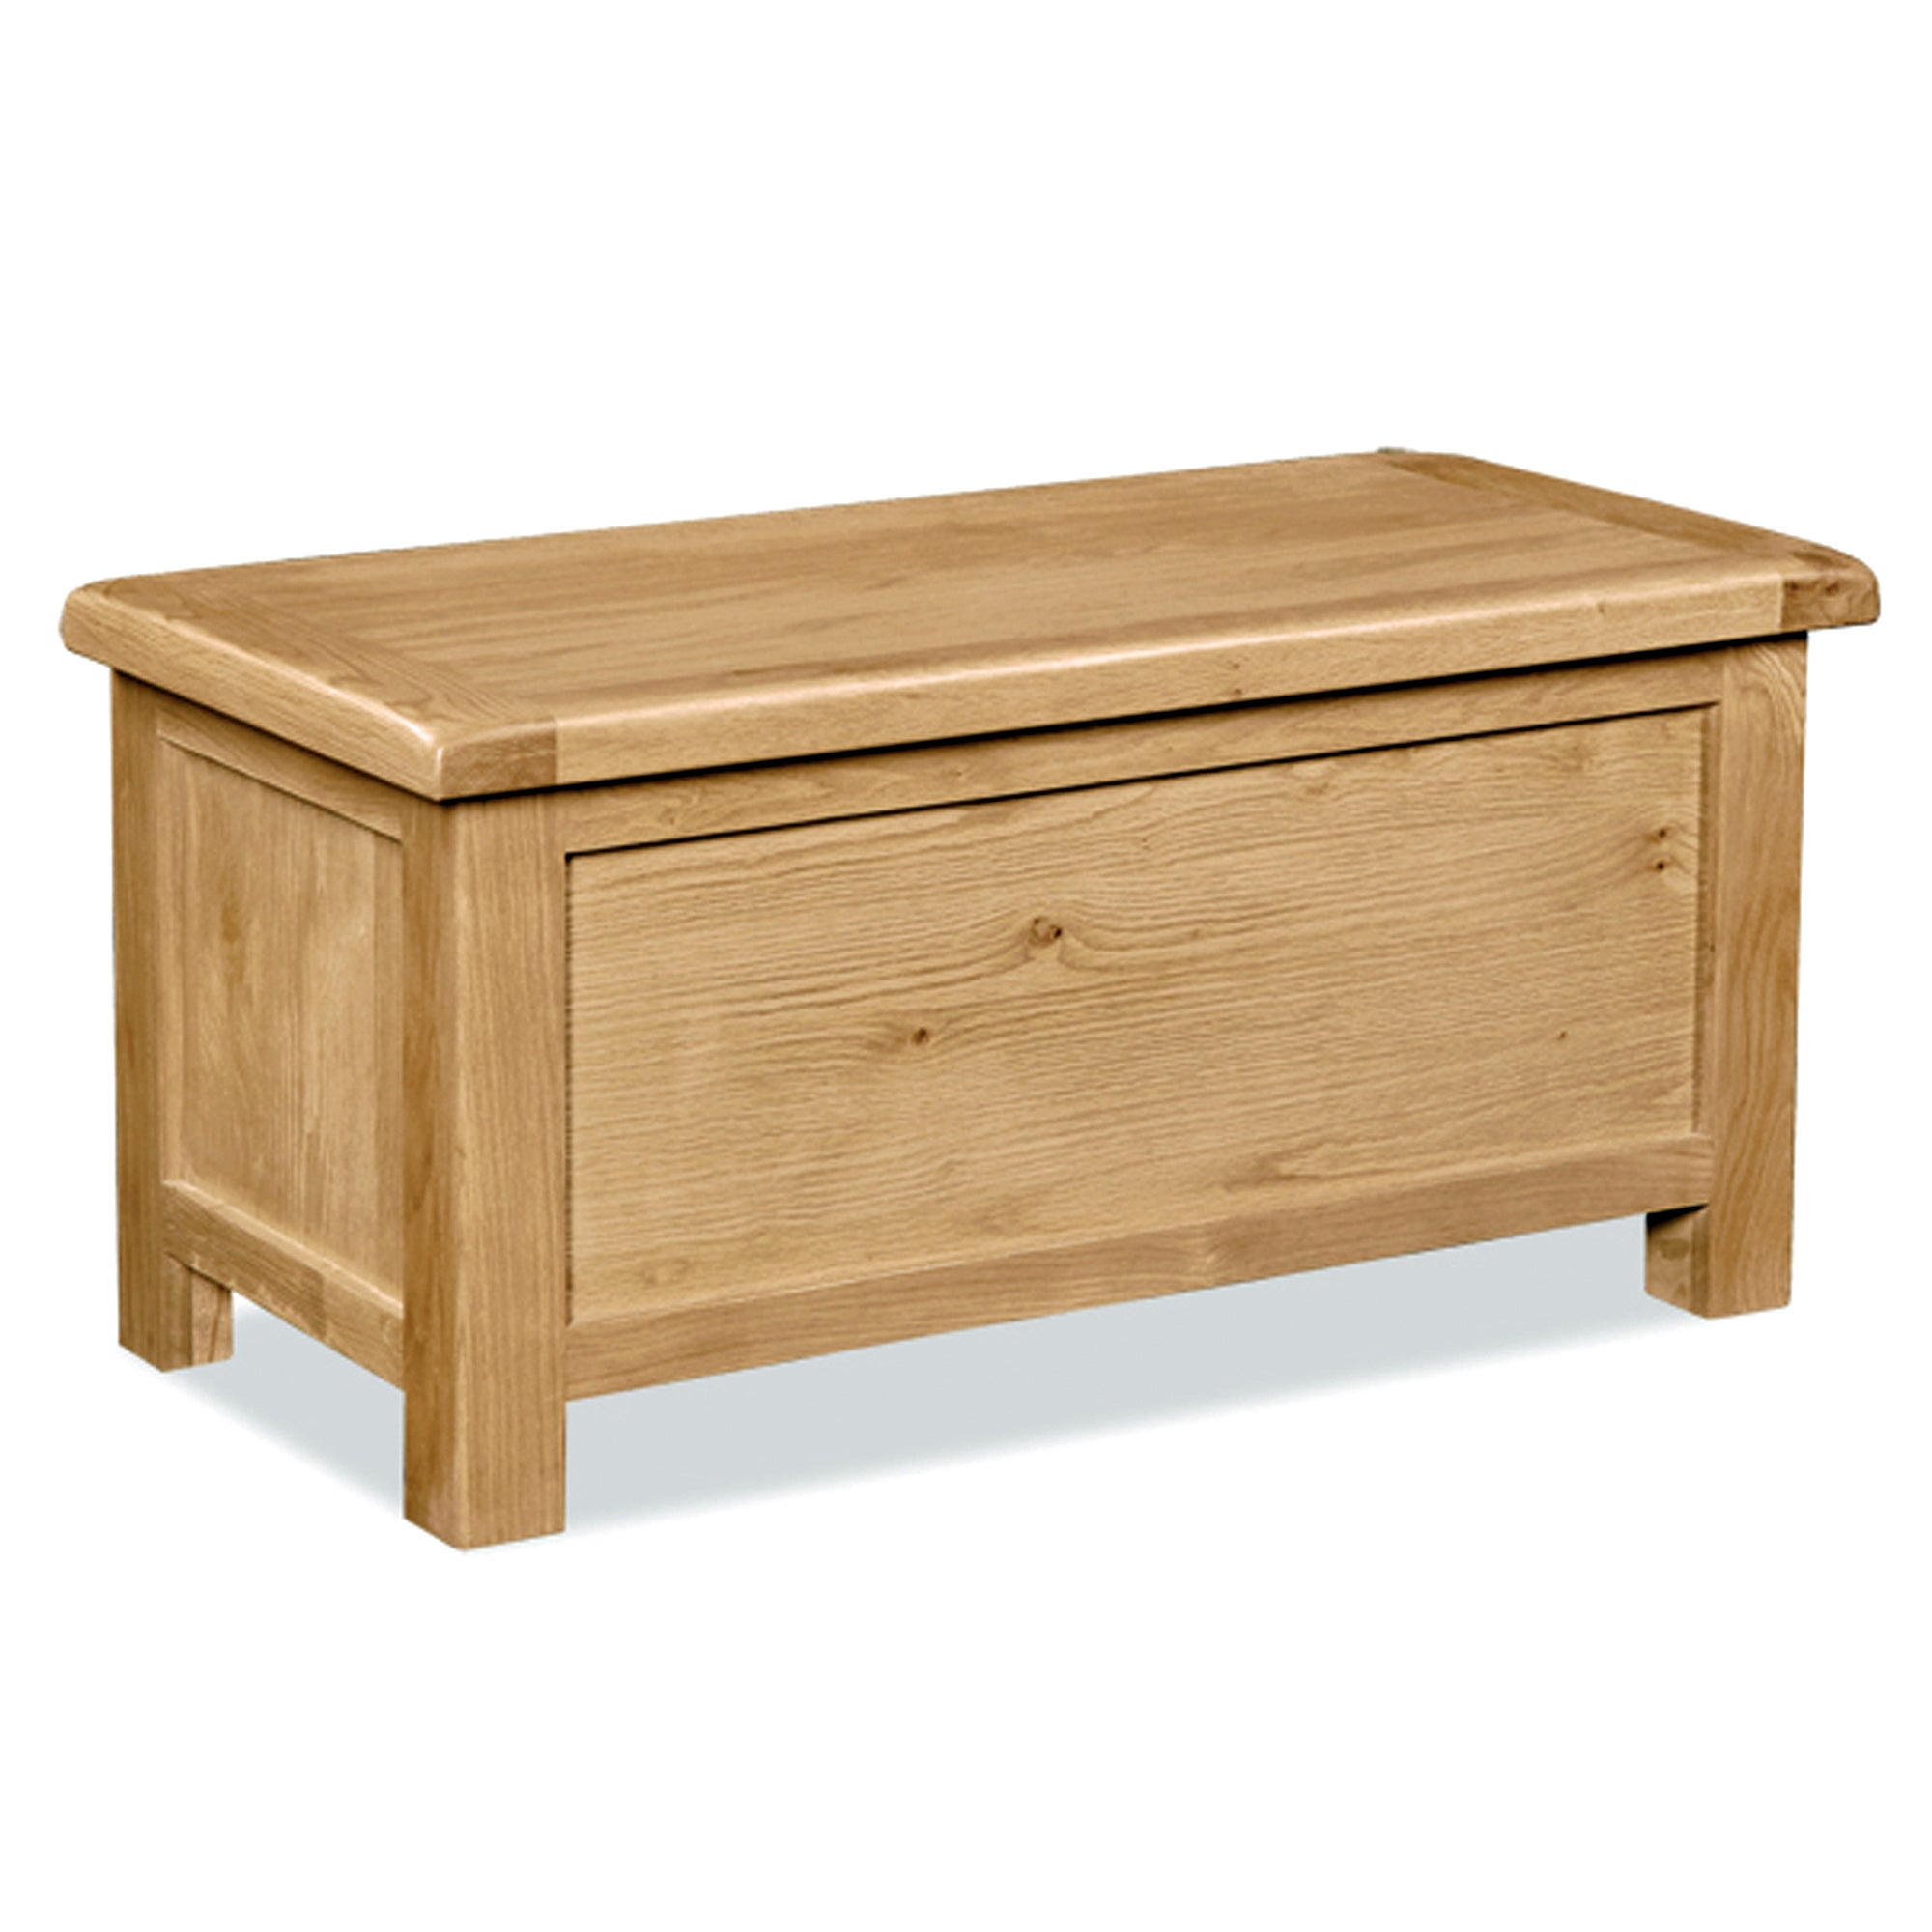 Aylesbury Oak Storage Box